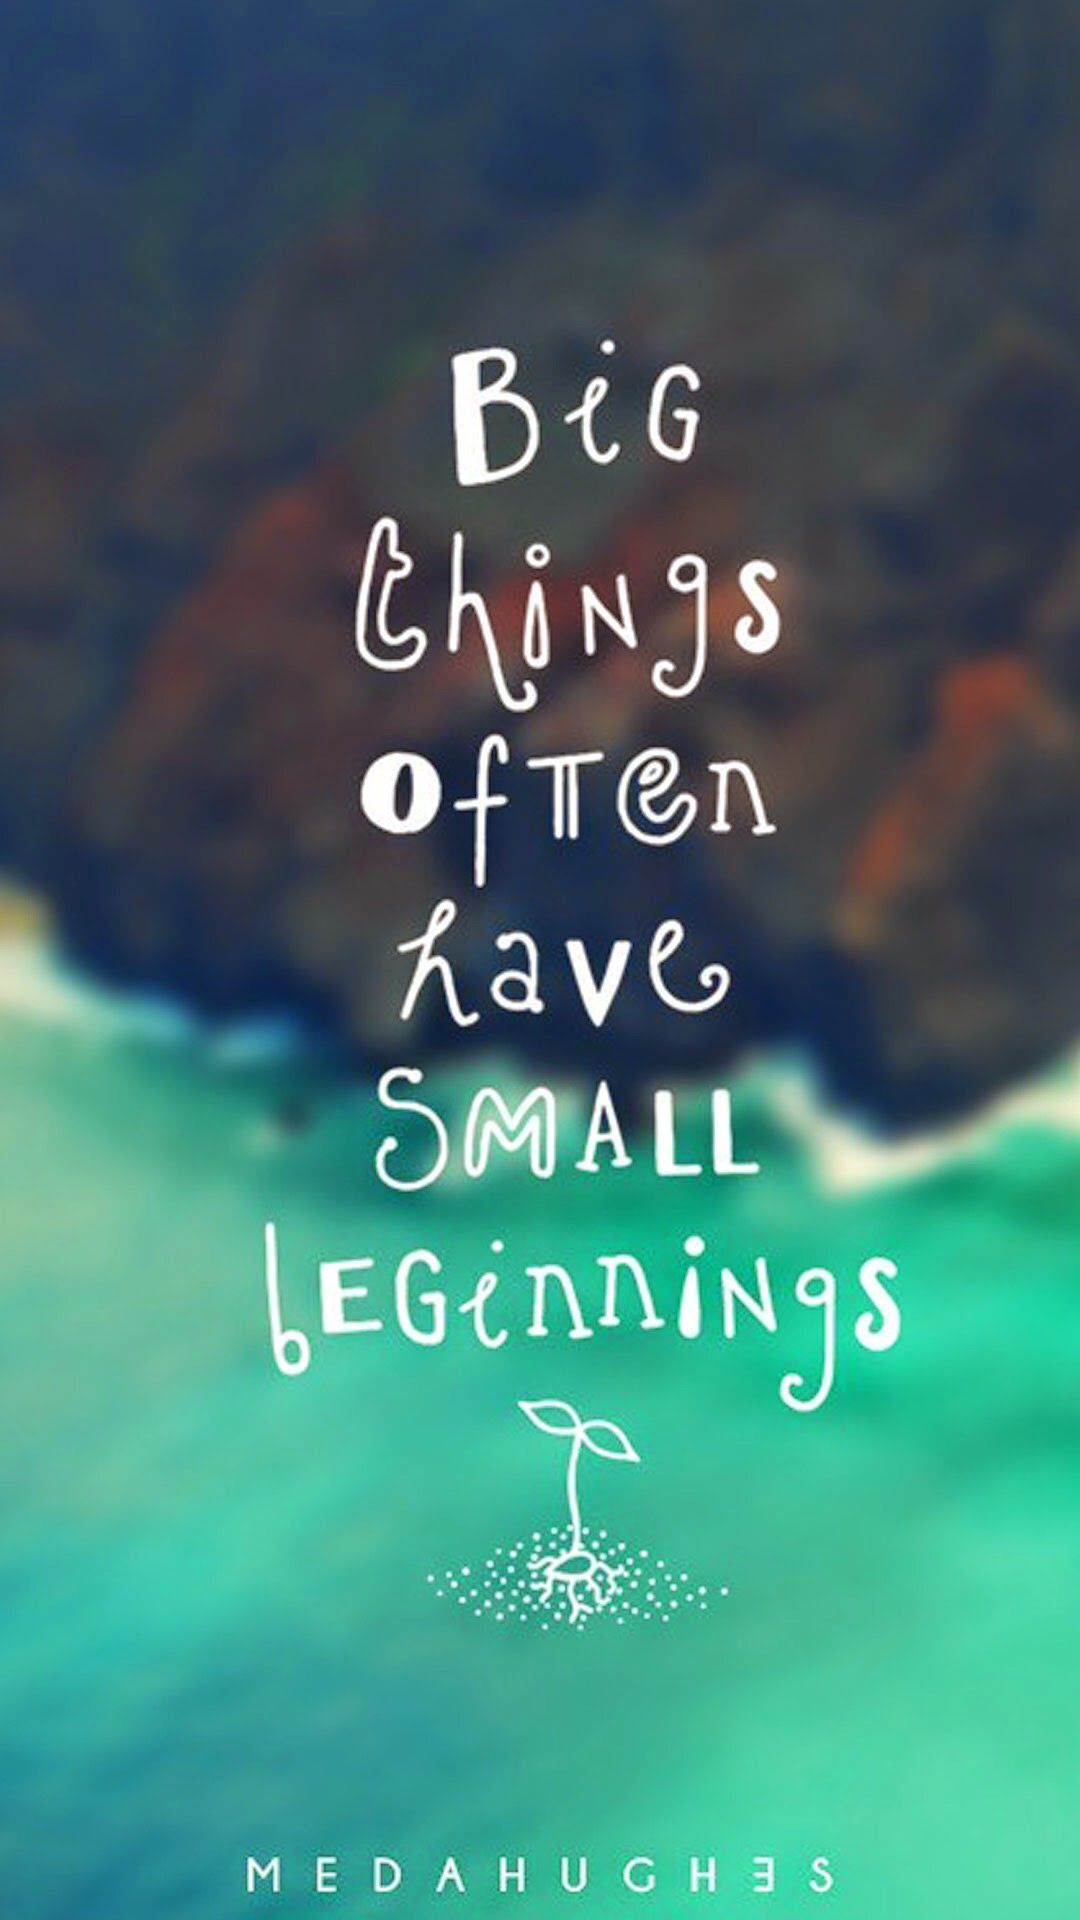 tap image for more quote wallpaper! small beginning - @mobile9